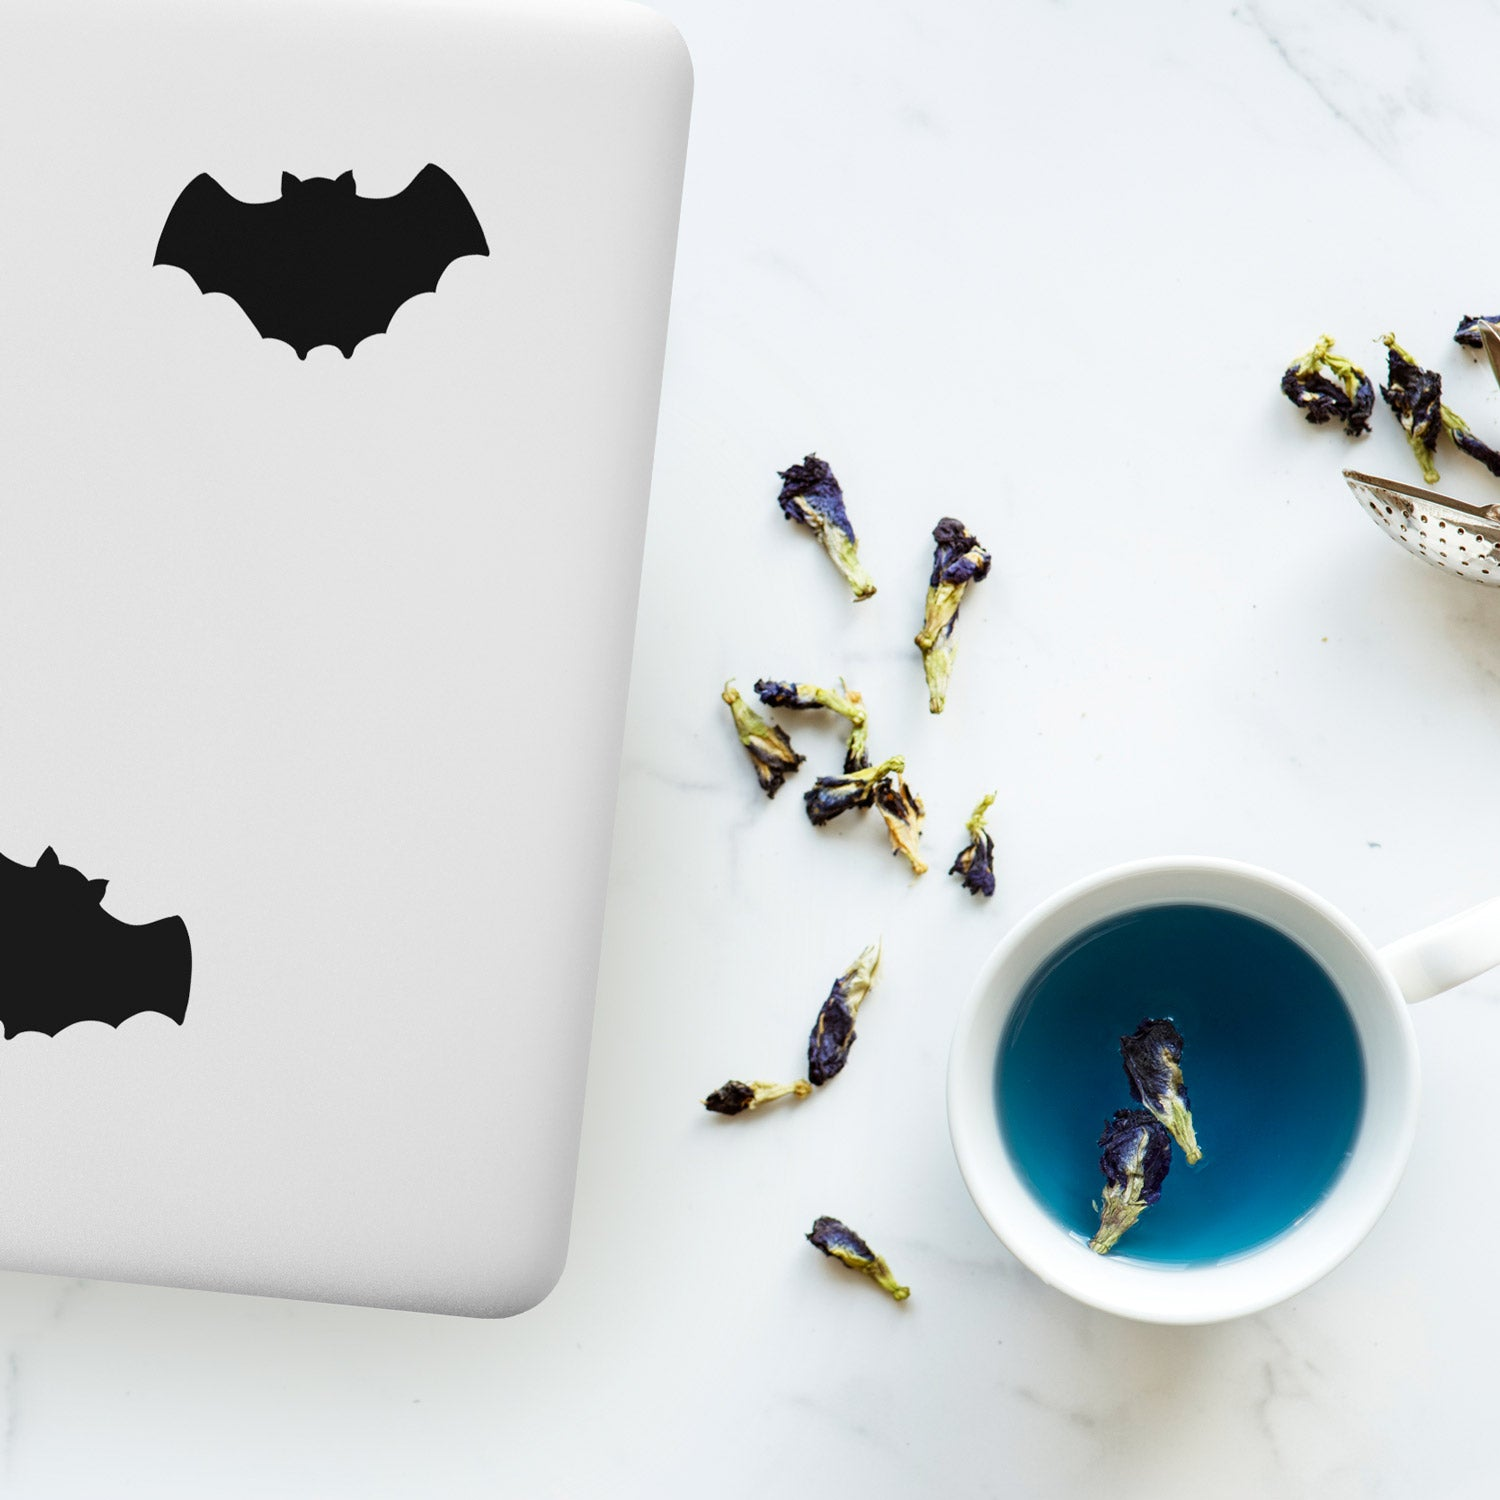 Small bat decal